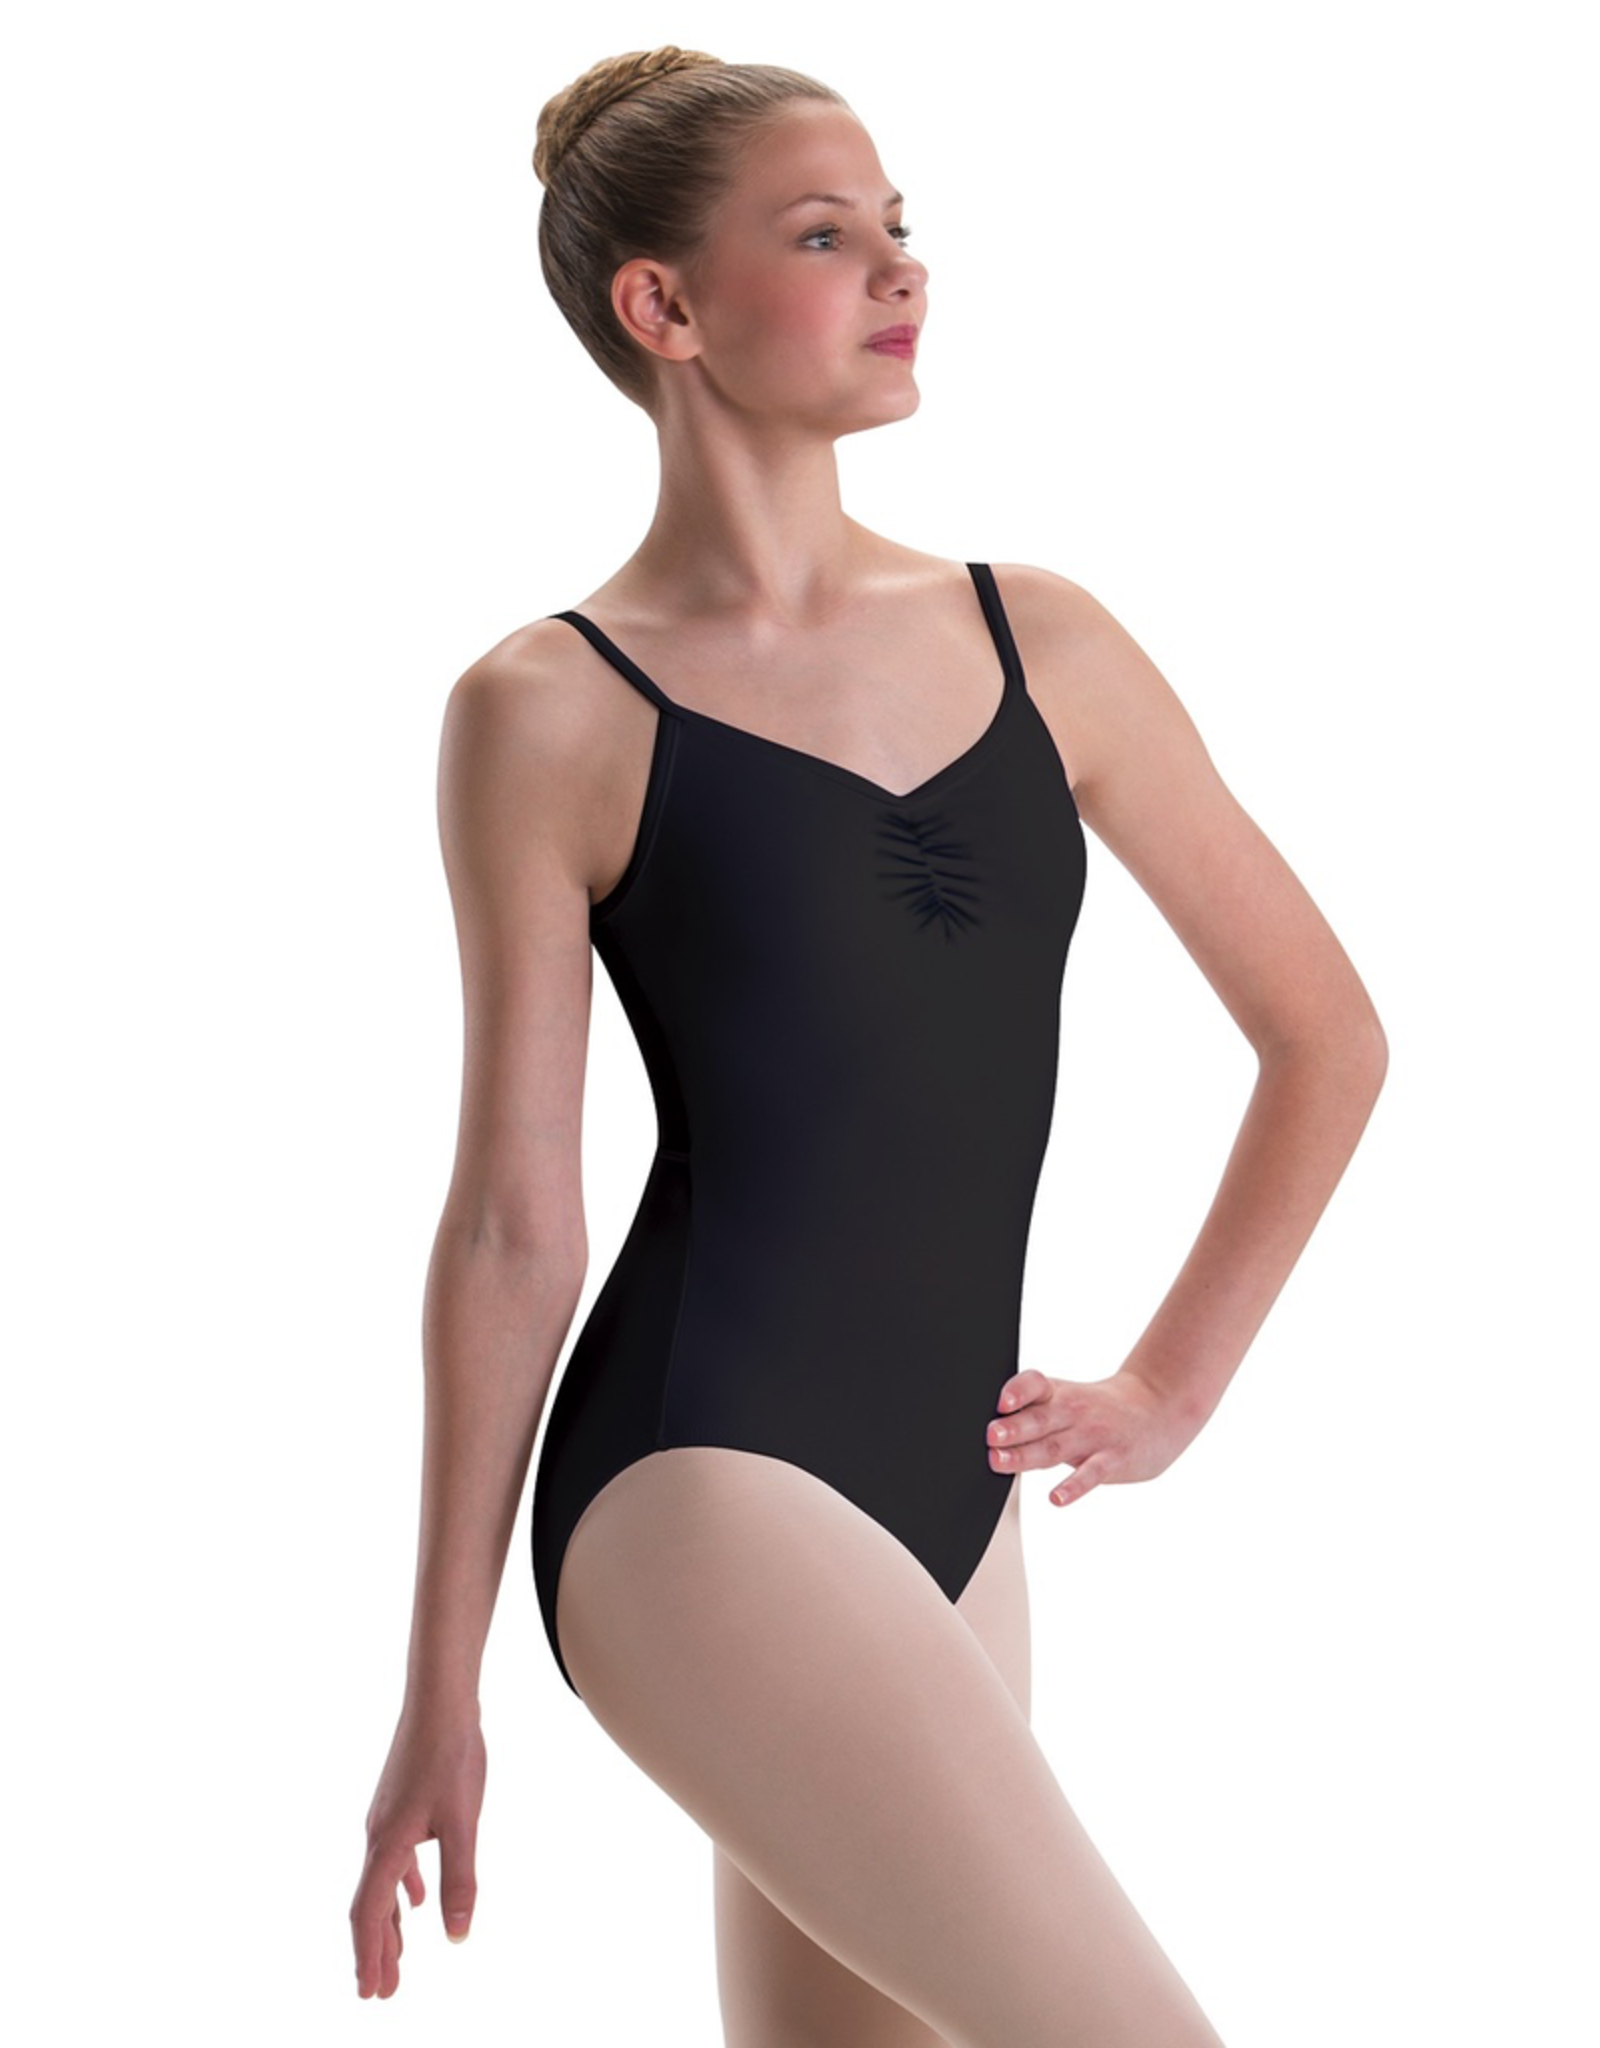 Motionwear 2530 Pinch Front Mesh Back Cami Leotard Adult